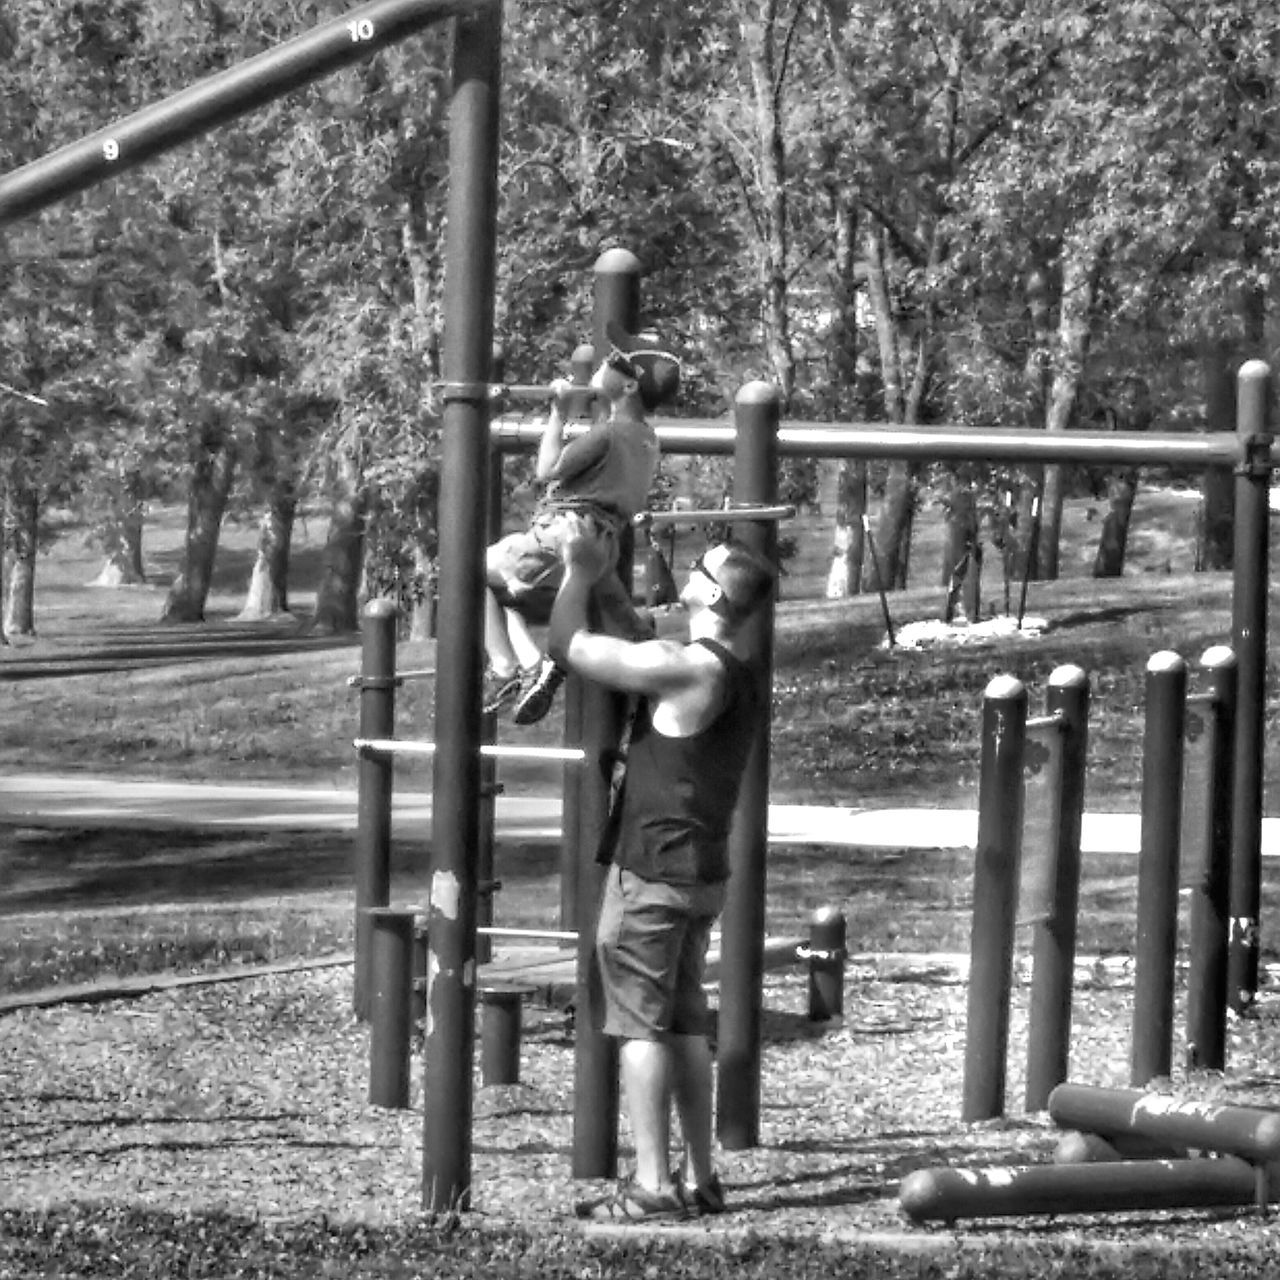 Father Son Fitness Bonding Park Nature Outdoors Priceless Black And White